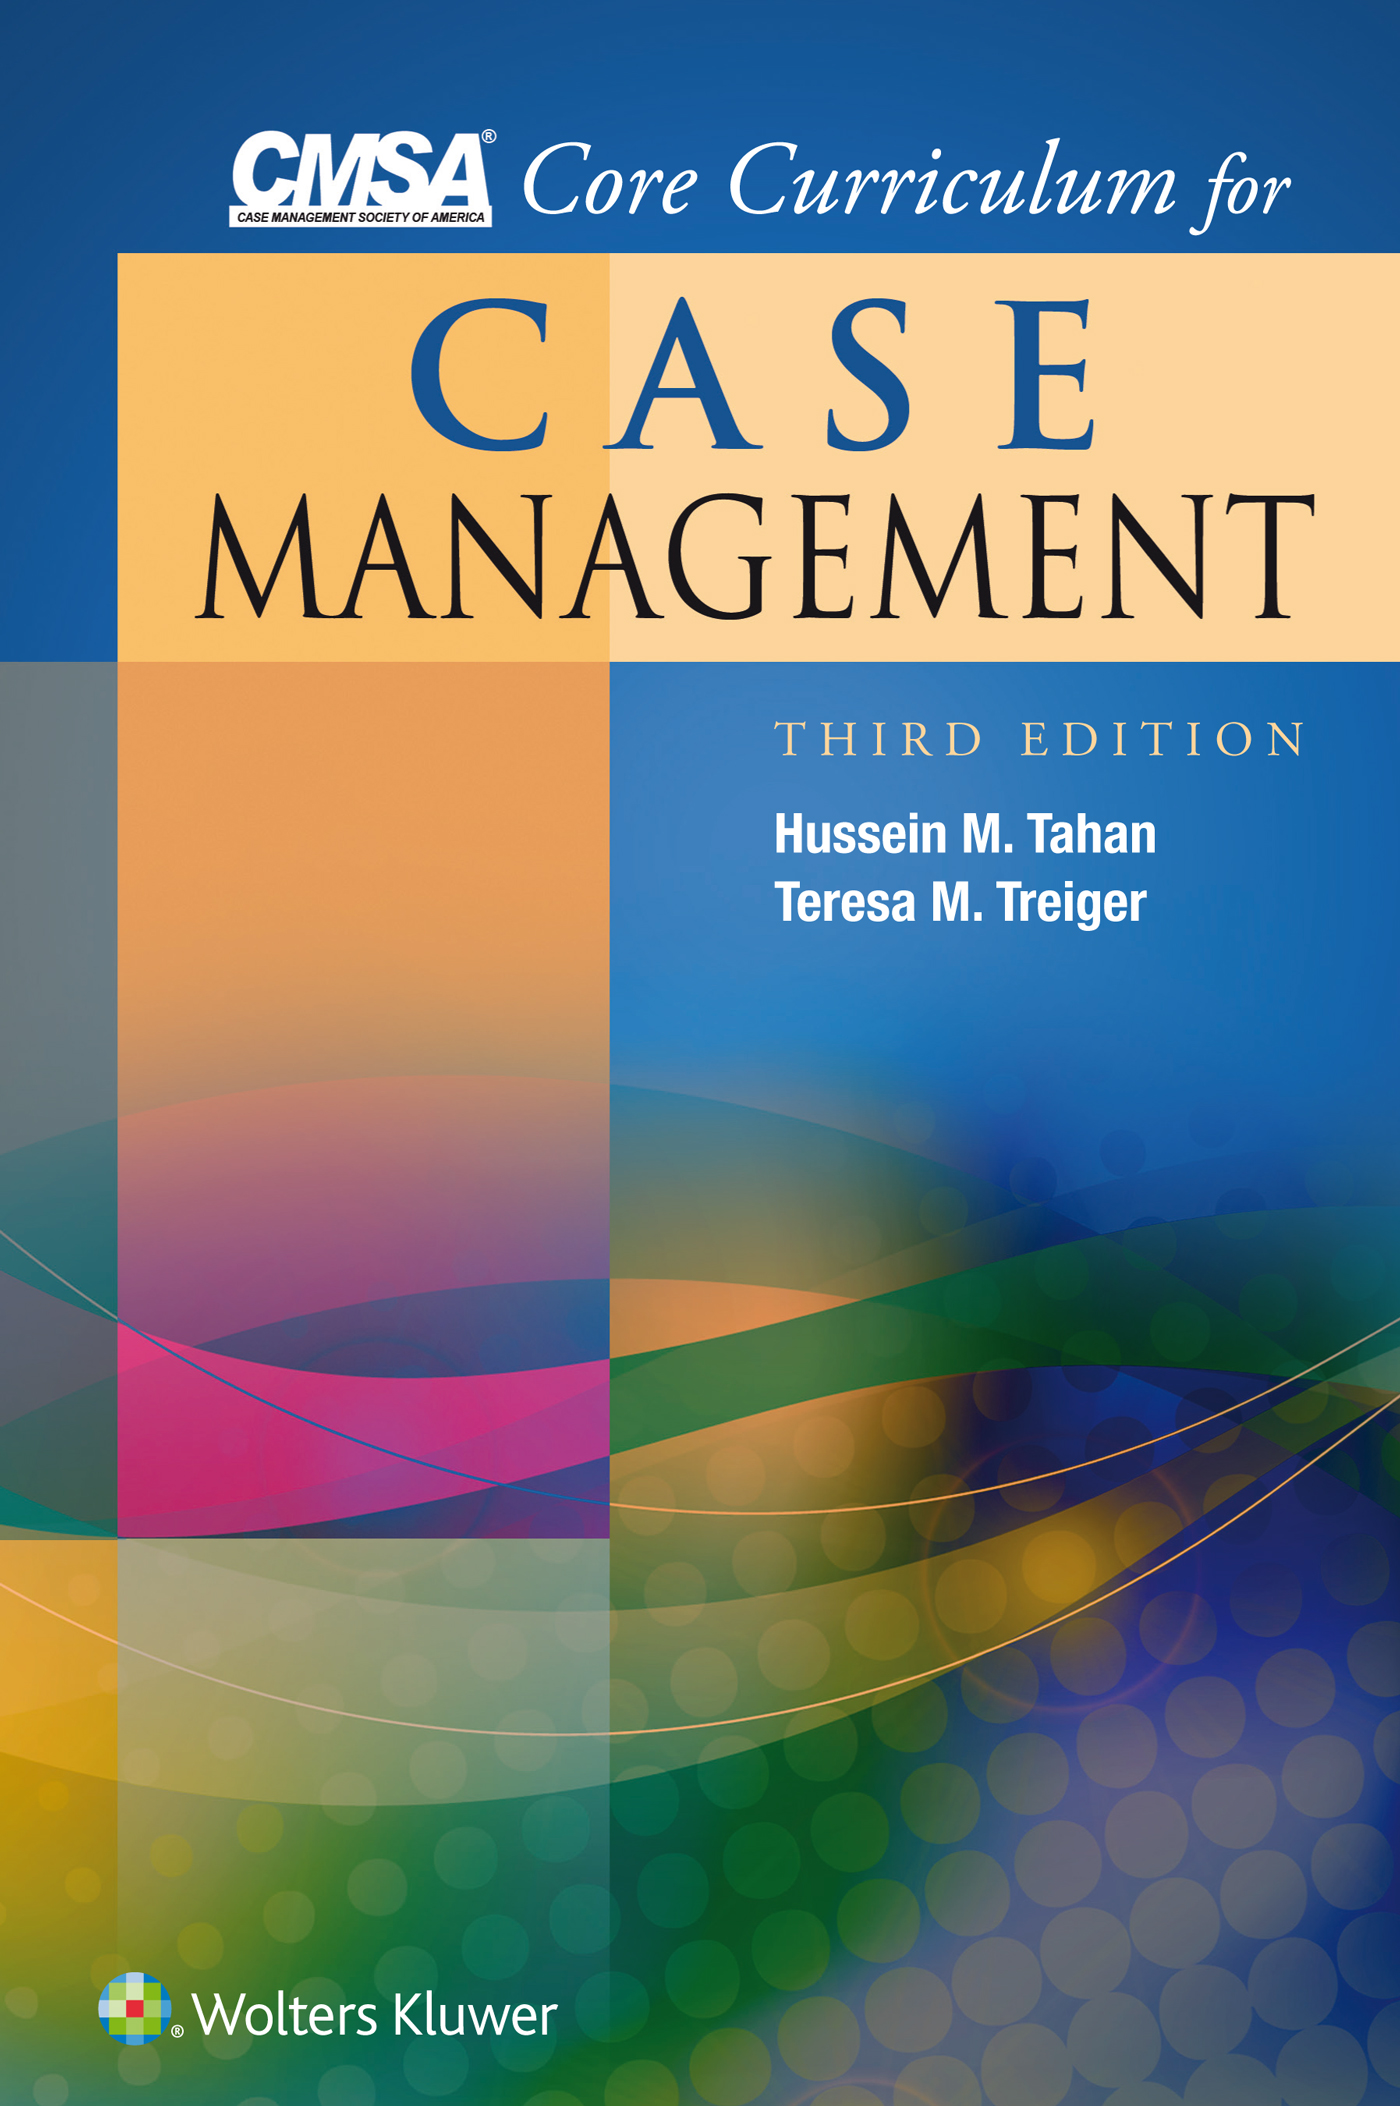 Nursing practice catalogue 2018 wolters kluwer book cmsa core curriculum for case management xflitez Image collections